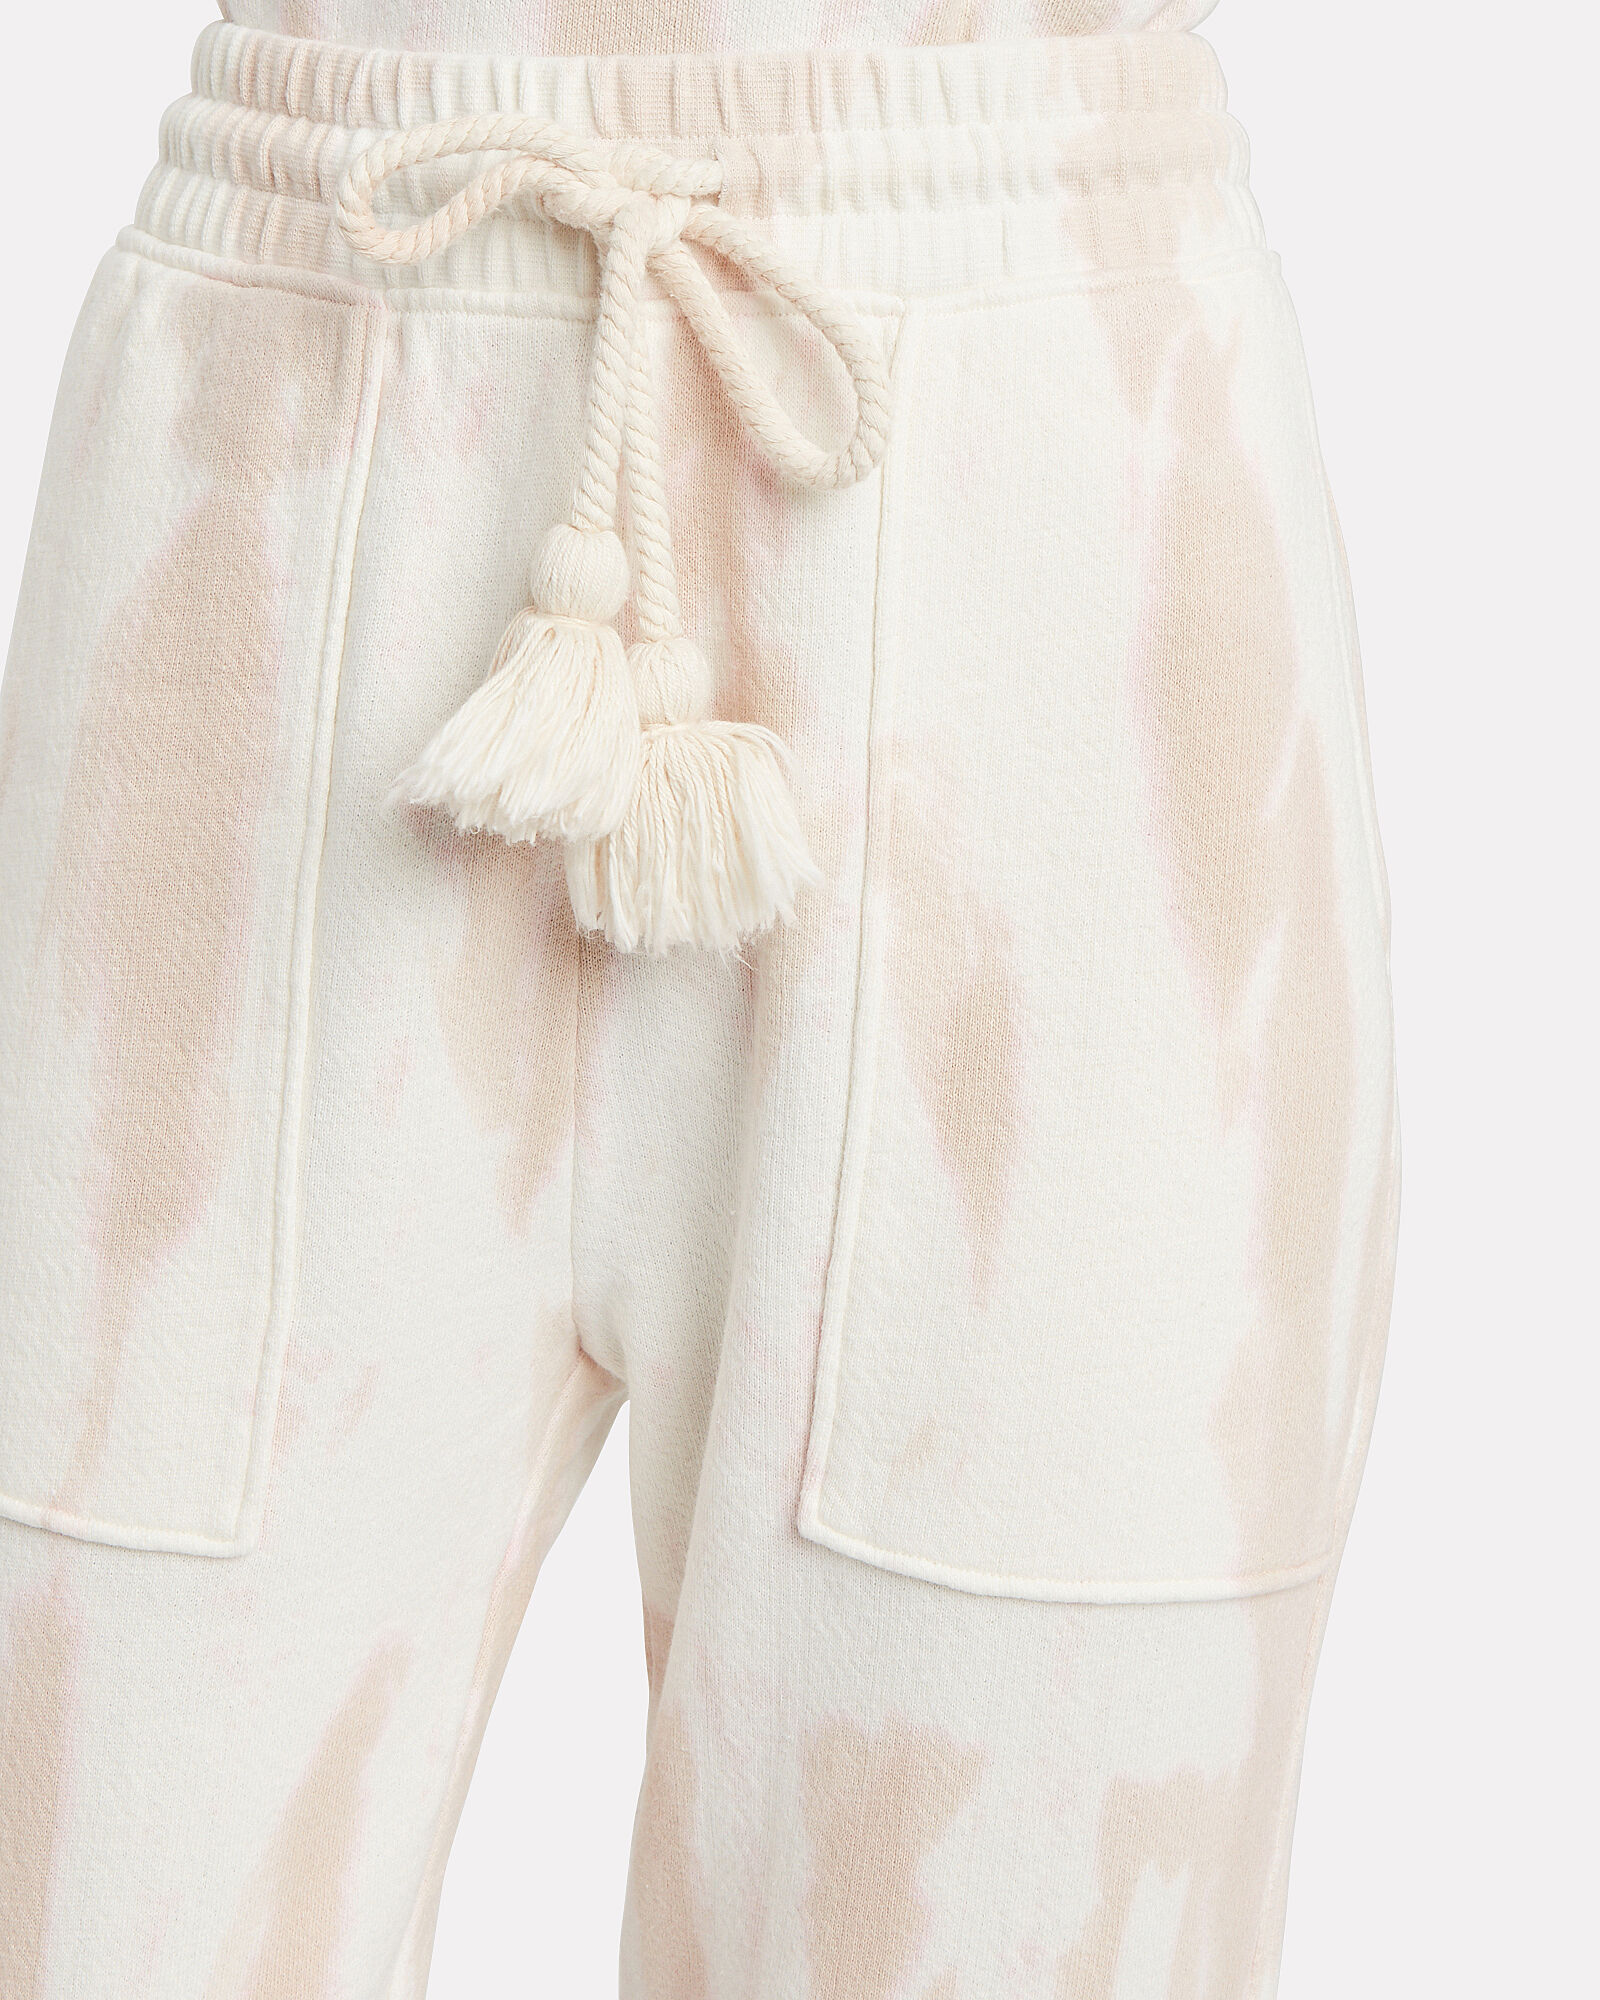 Charley Tie-Dye Sweatpants, BLUSH, hi-res